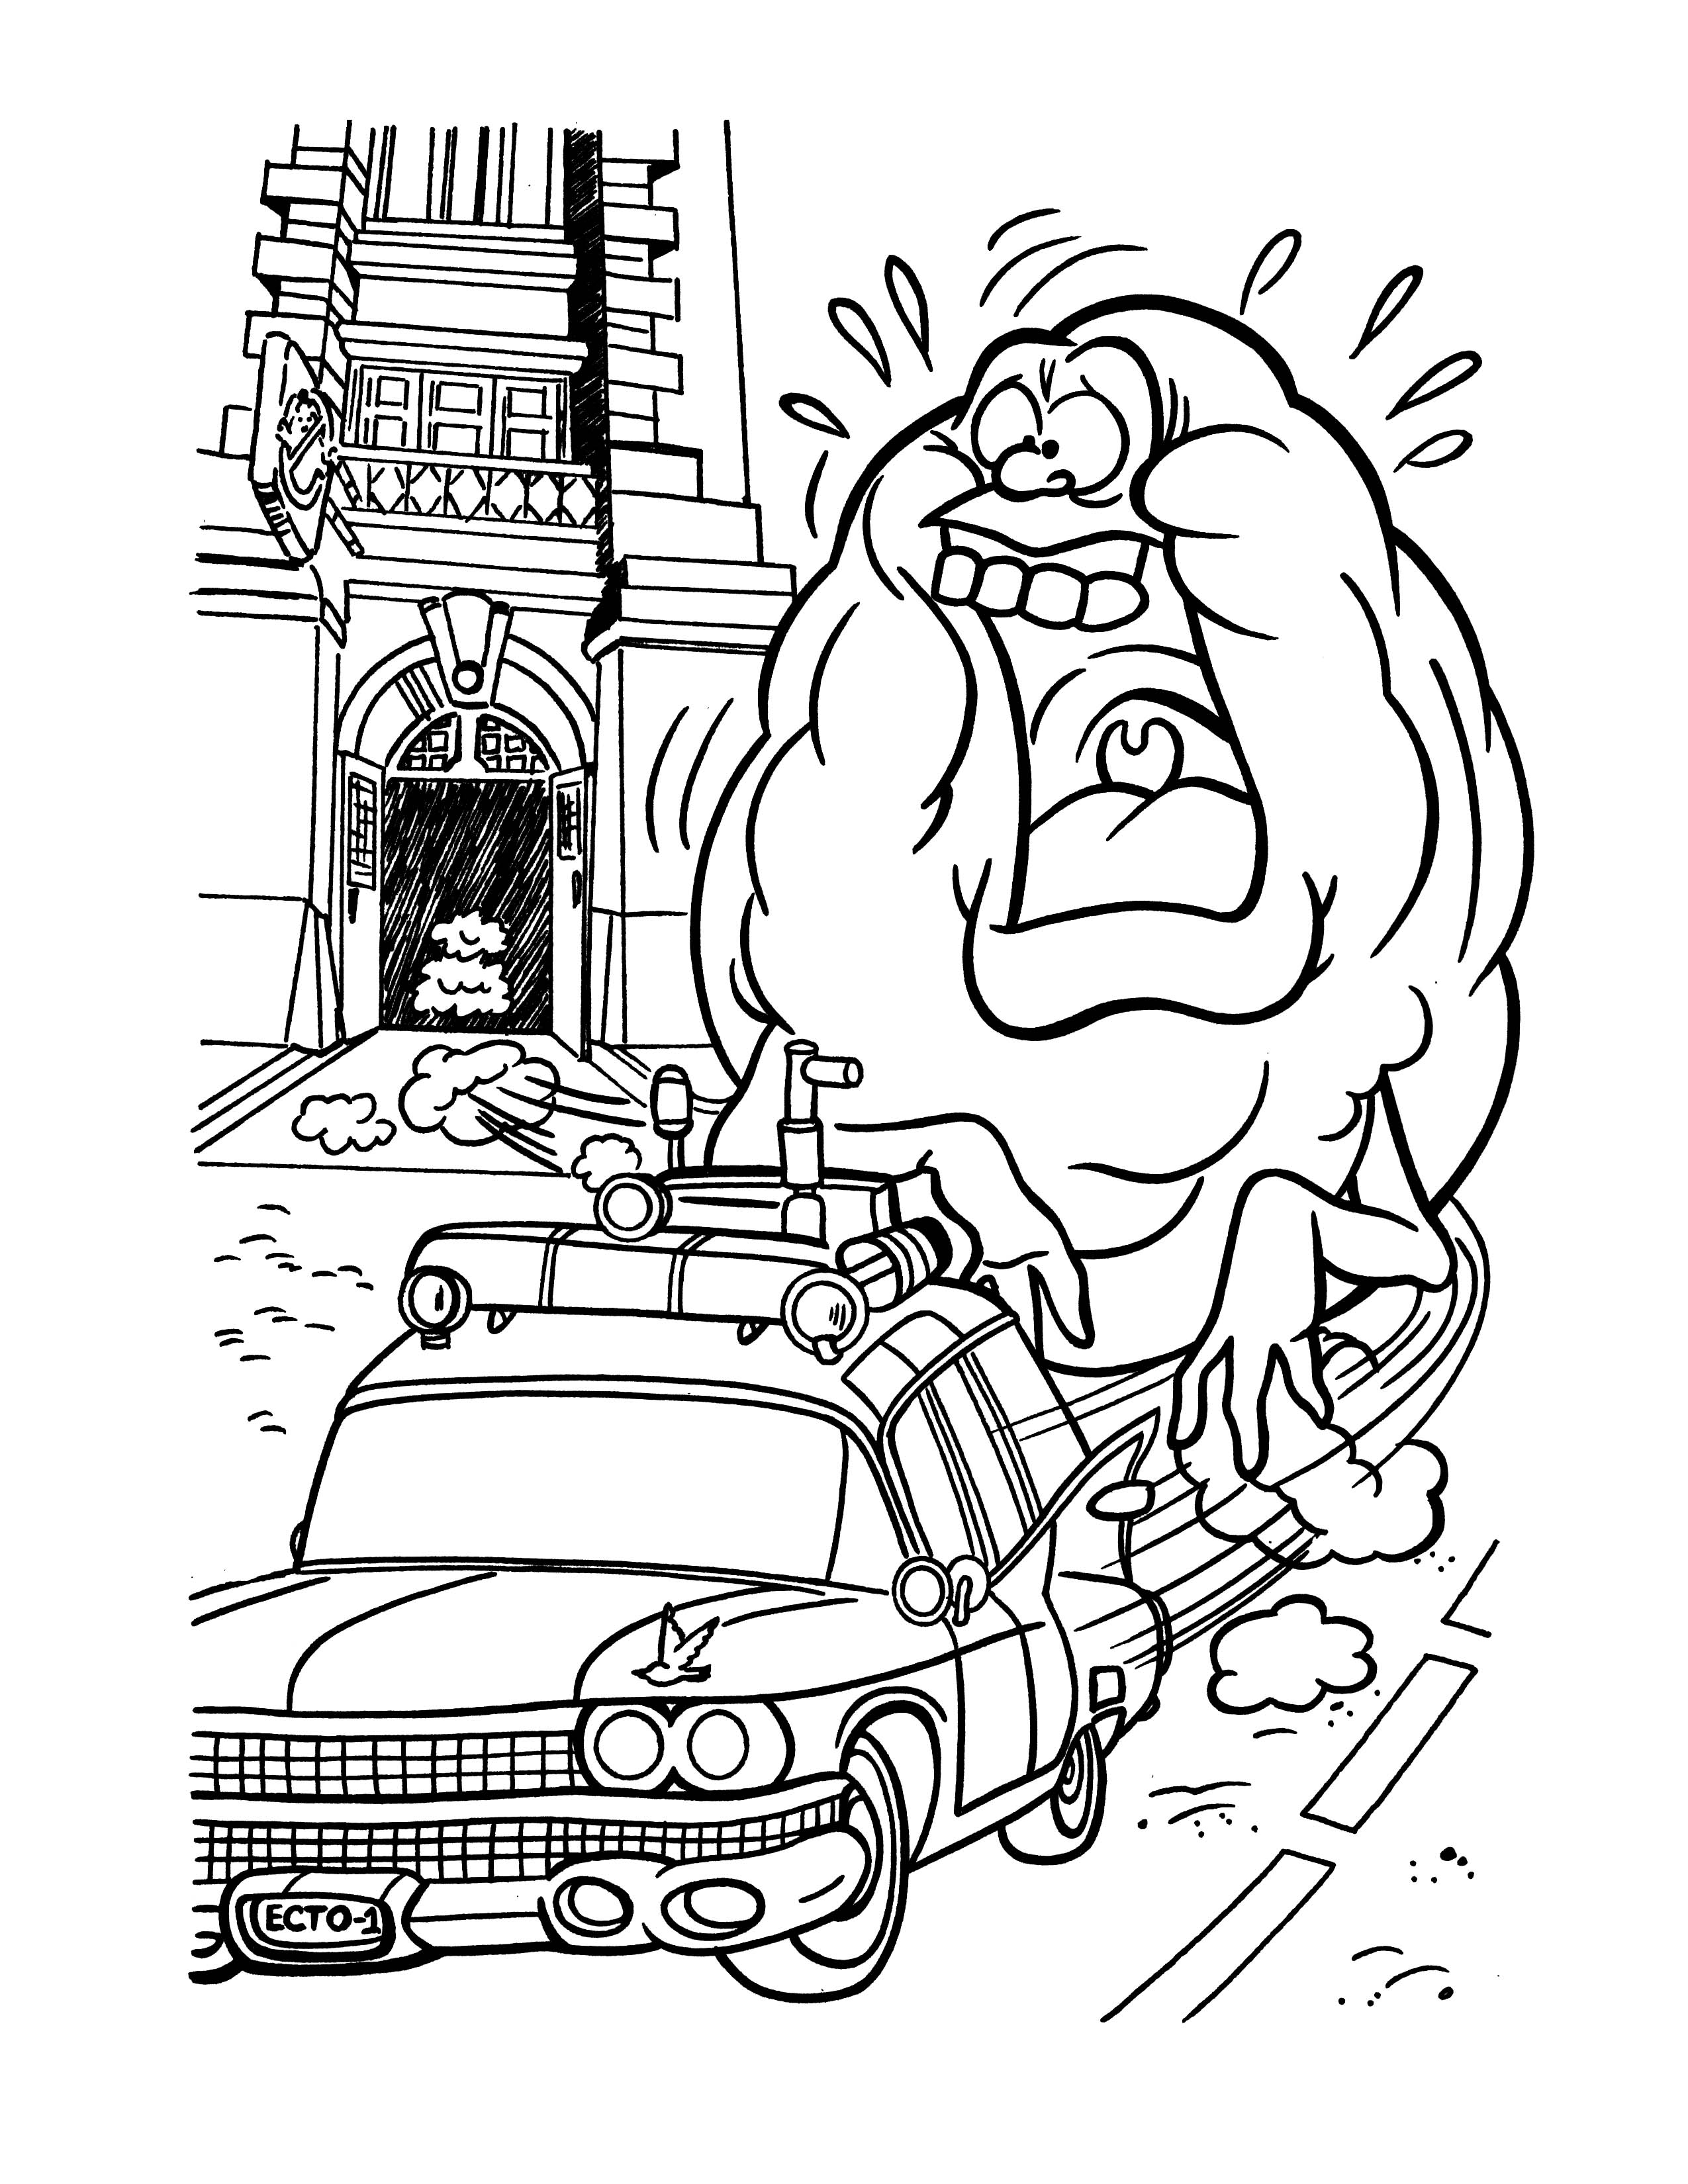 coloring pages of ghostbusters,printable,coloring pages